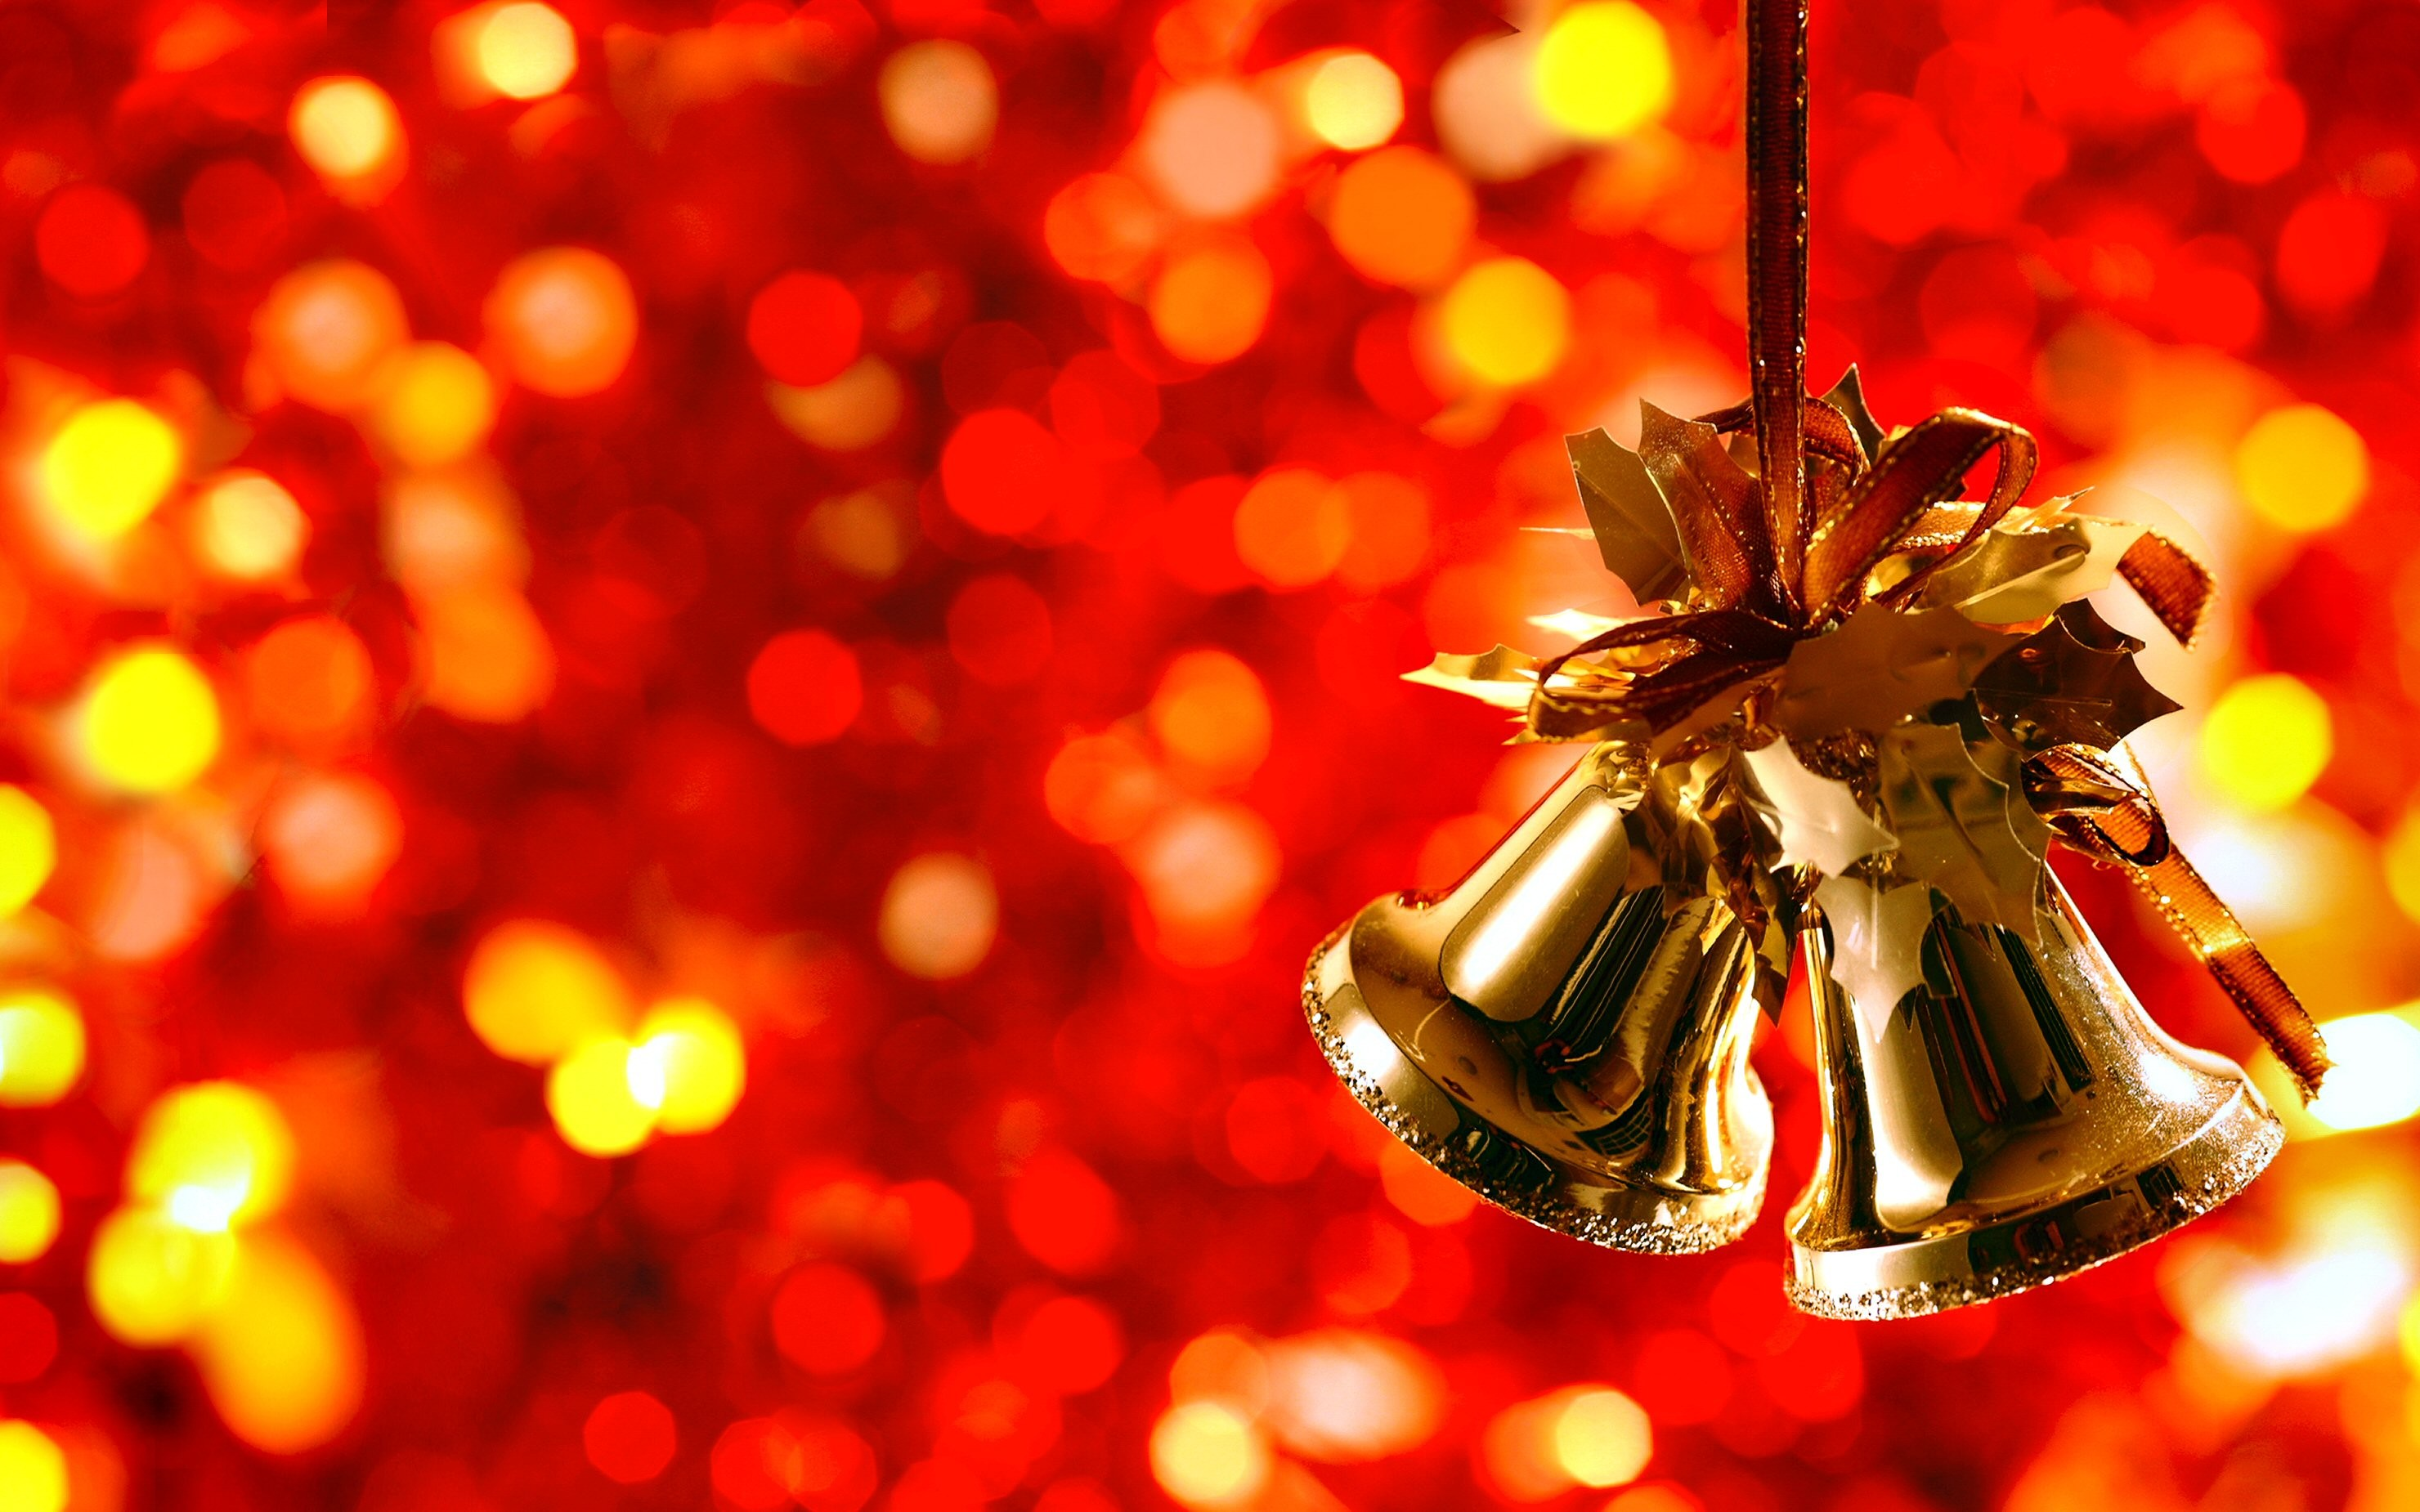 Res: 2960x1850, HD Wallpaper | Background Image ID:335893.  Holiday Christmas